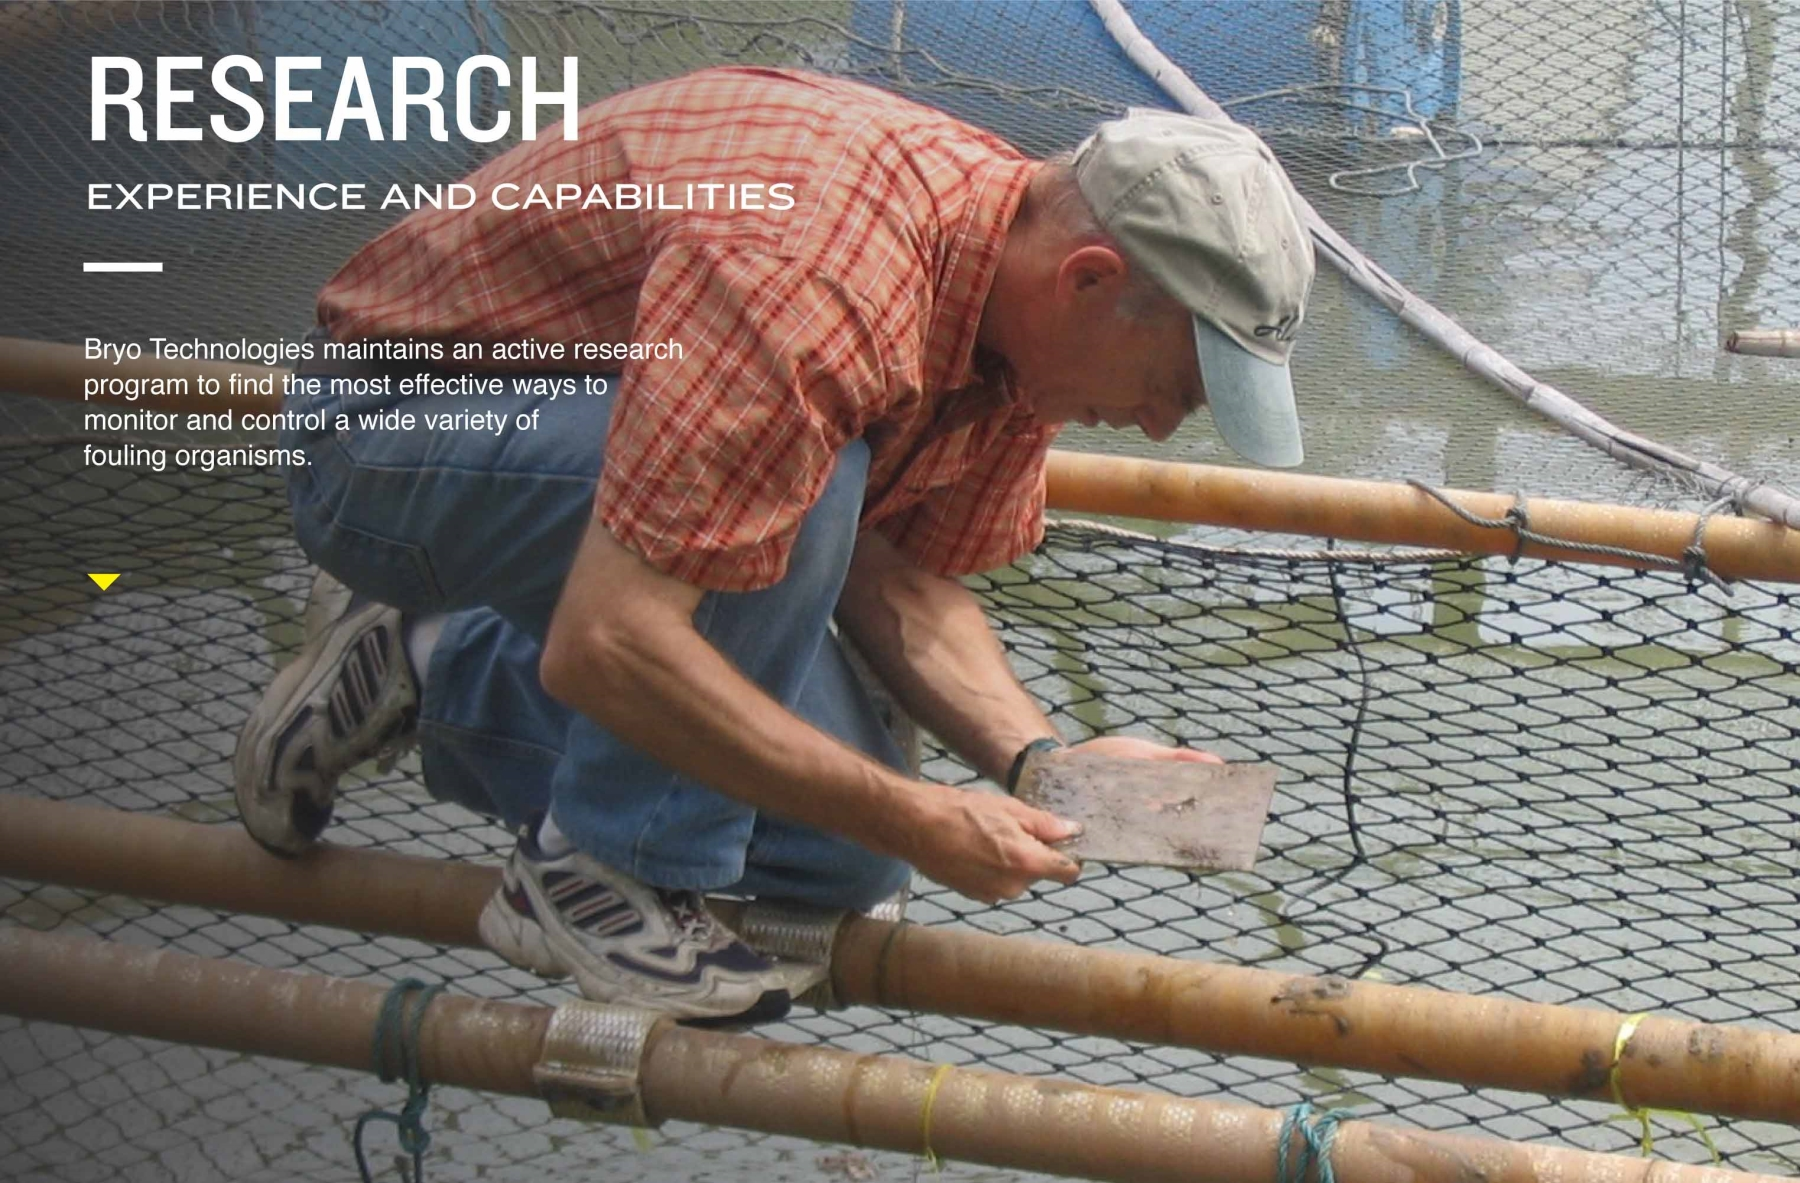 Research. Experience and Capabilities. Bryo Technologies maintains an active research program to find the most effective ways to monitor and control a wide variety of fouling organisms.